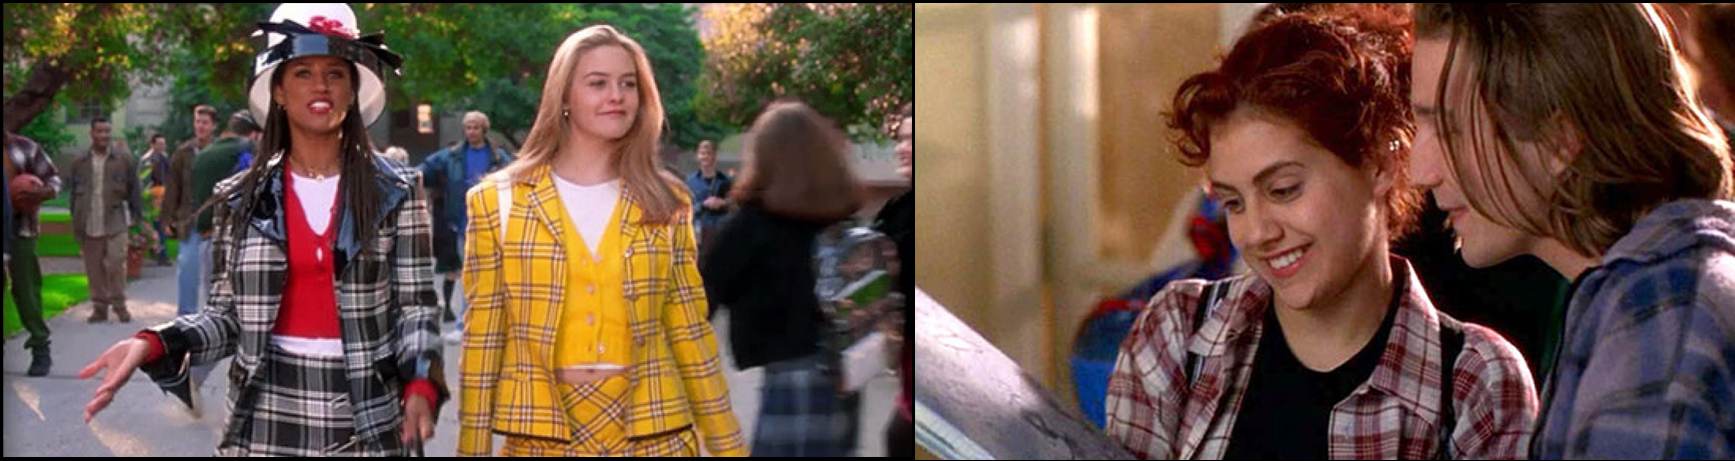 Clueless and the high school class system